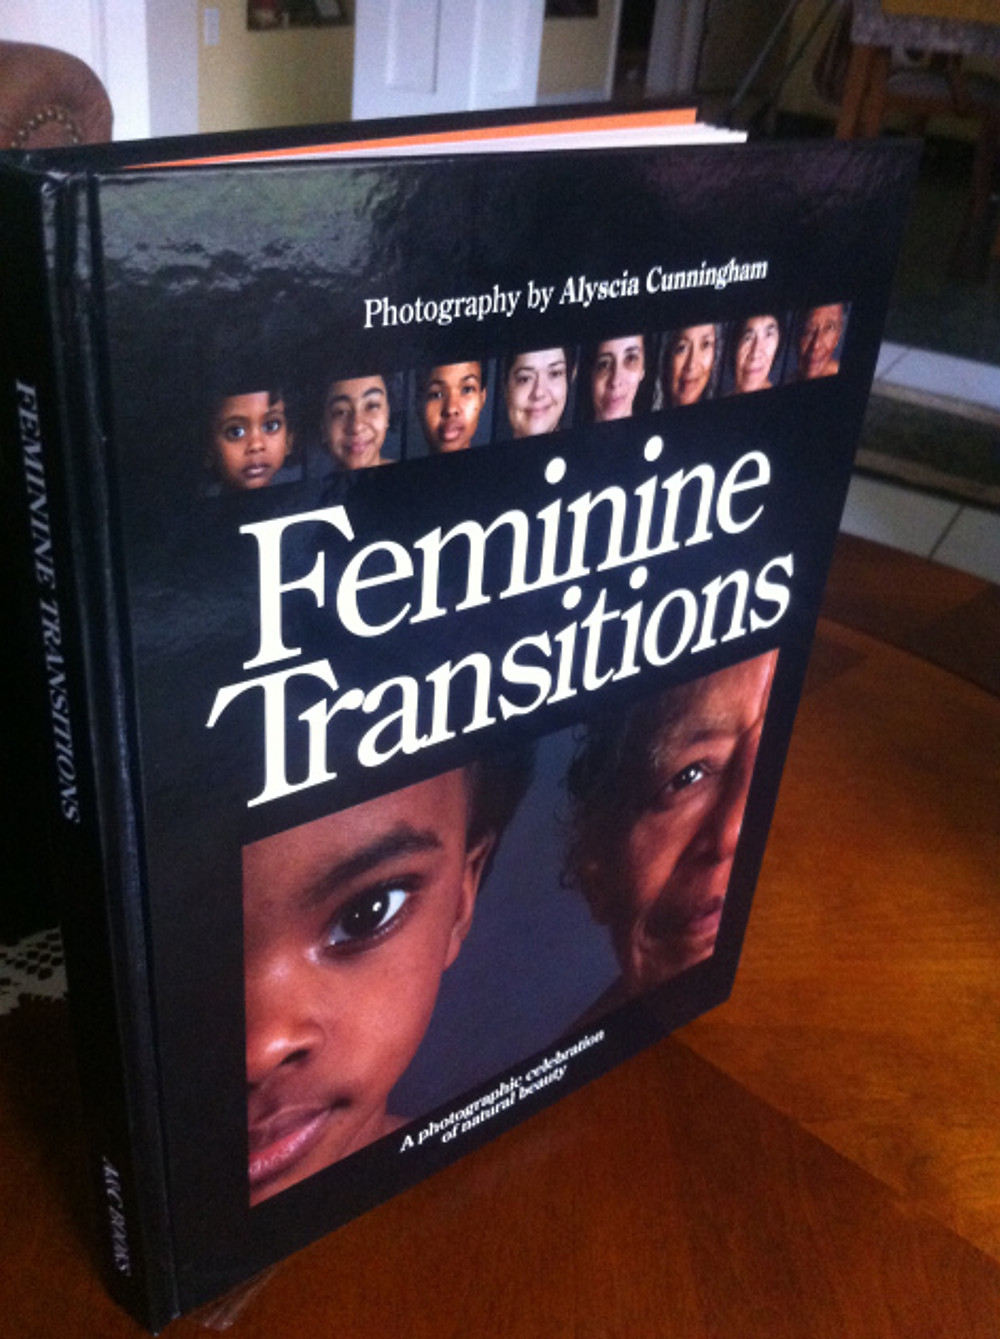 Feminine Transitions hardcover book